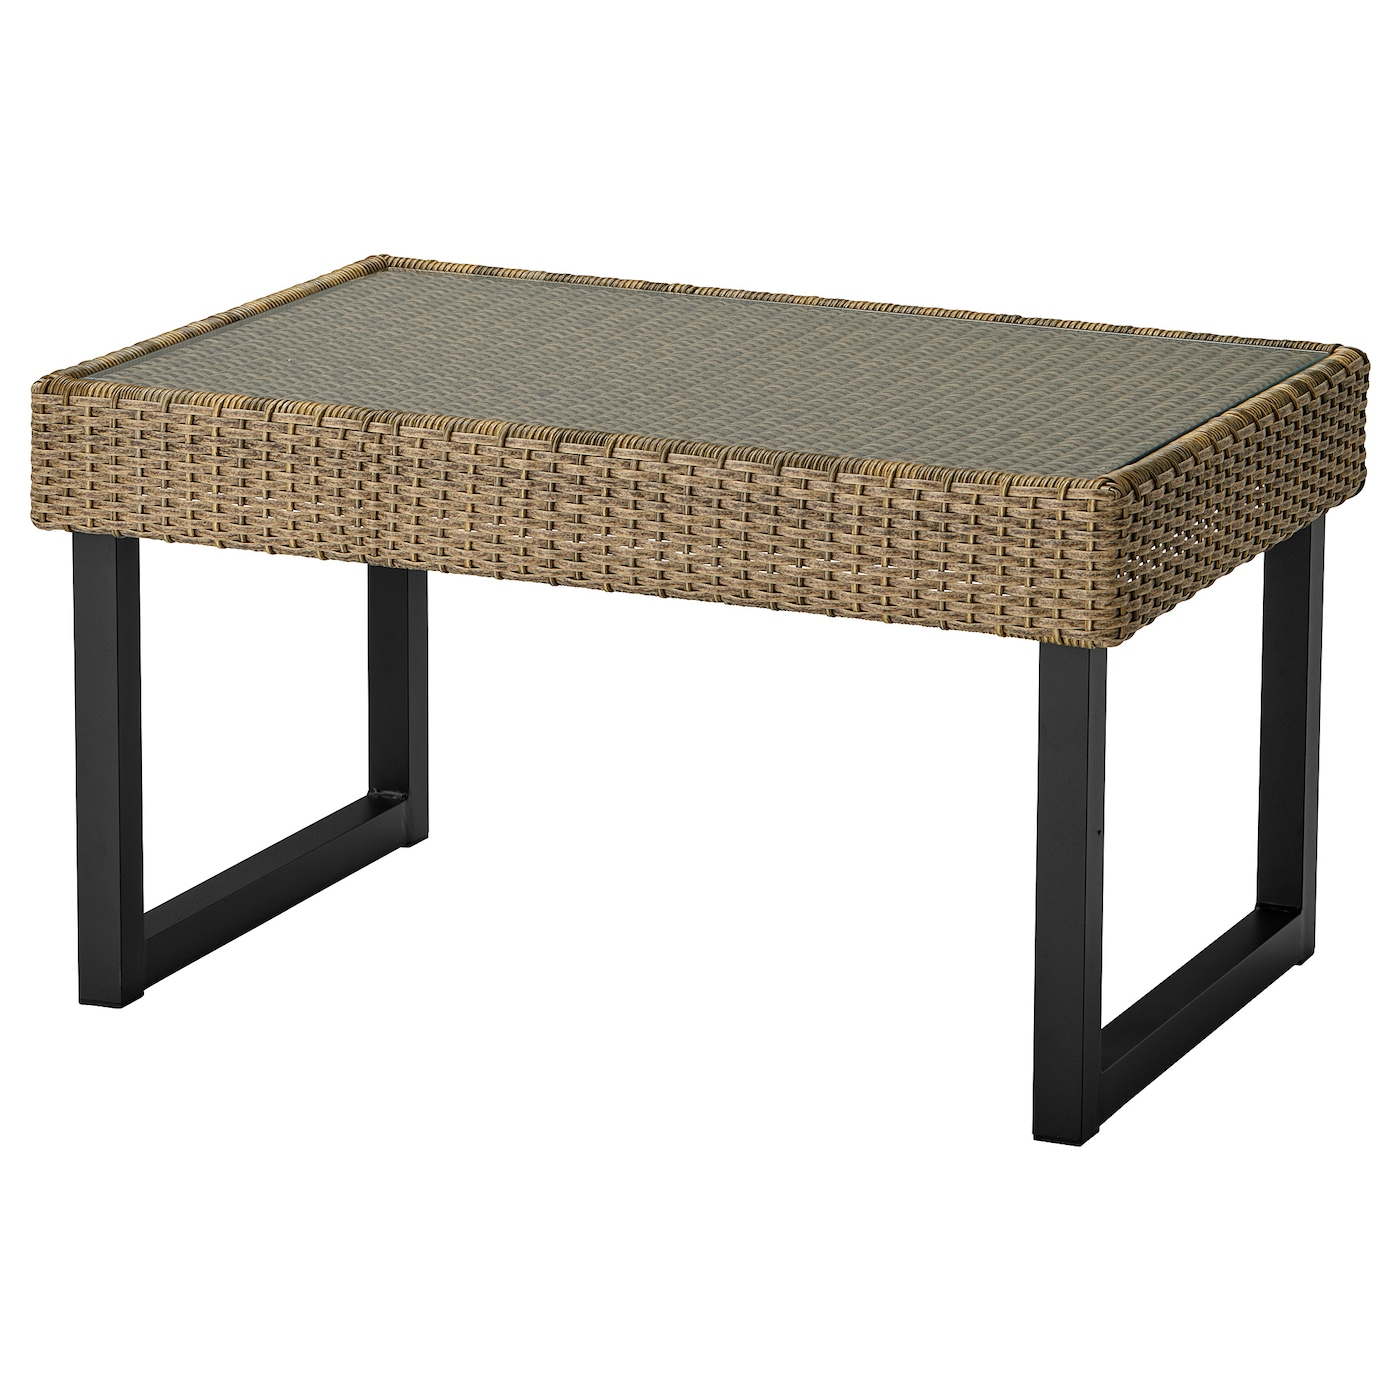 Solleron Coffee Table Outdoor Anthracite Brown 92x62 Cm Ikea [ 1400 x 1400 Pixel ]